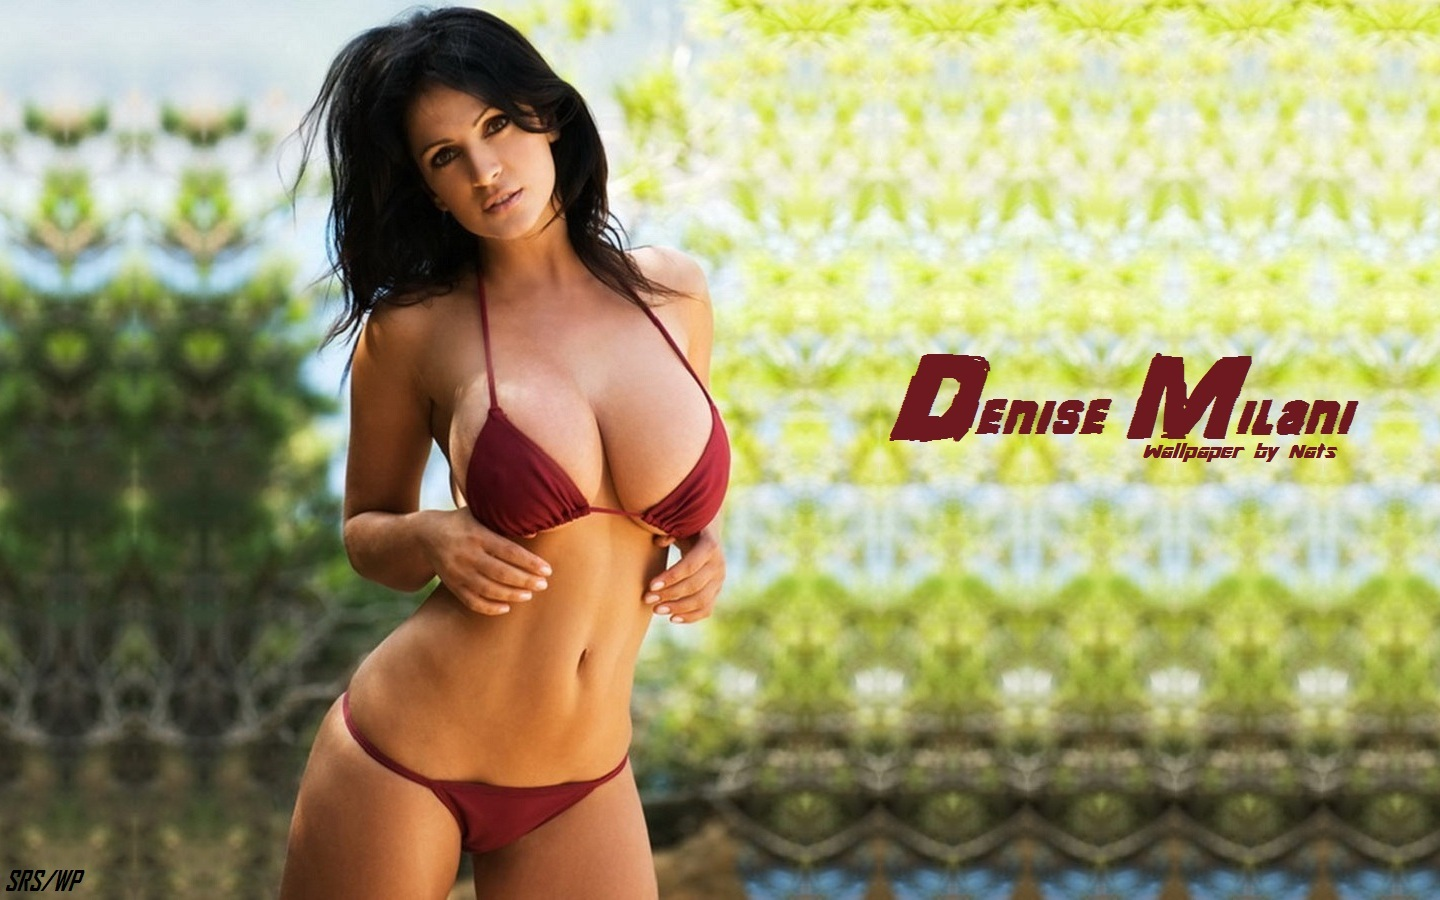 denise milani model Actress